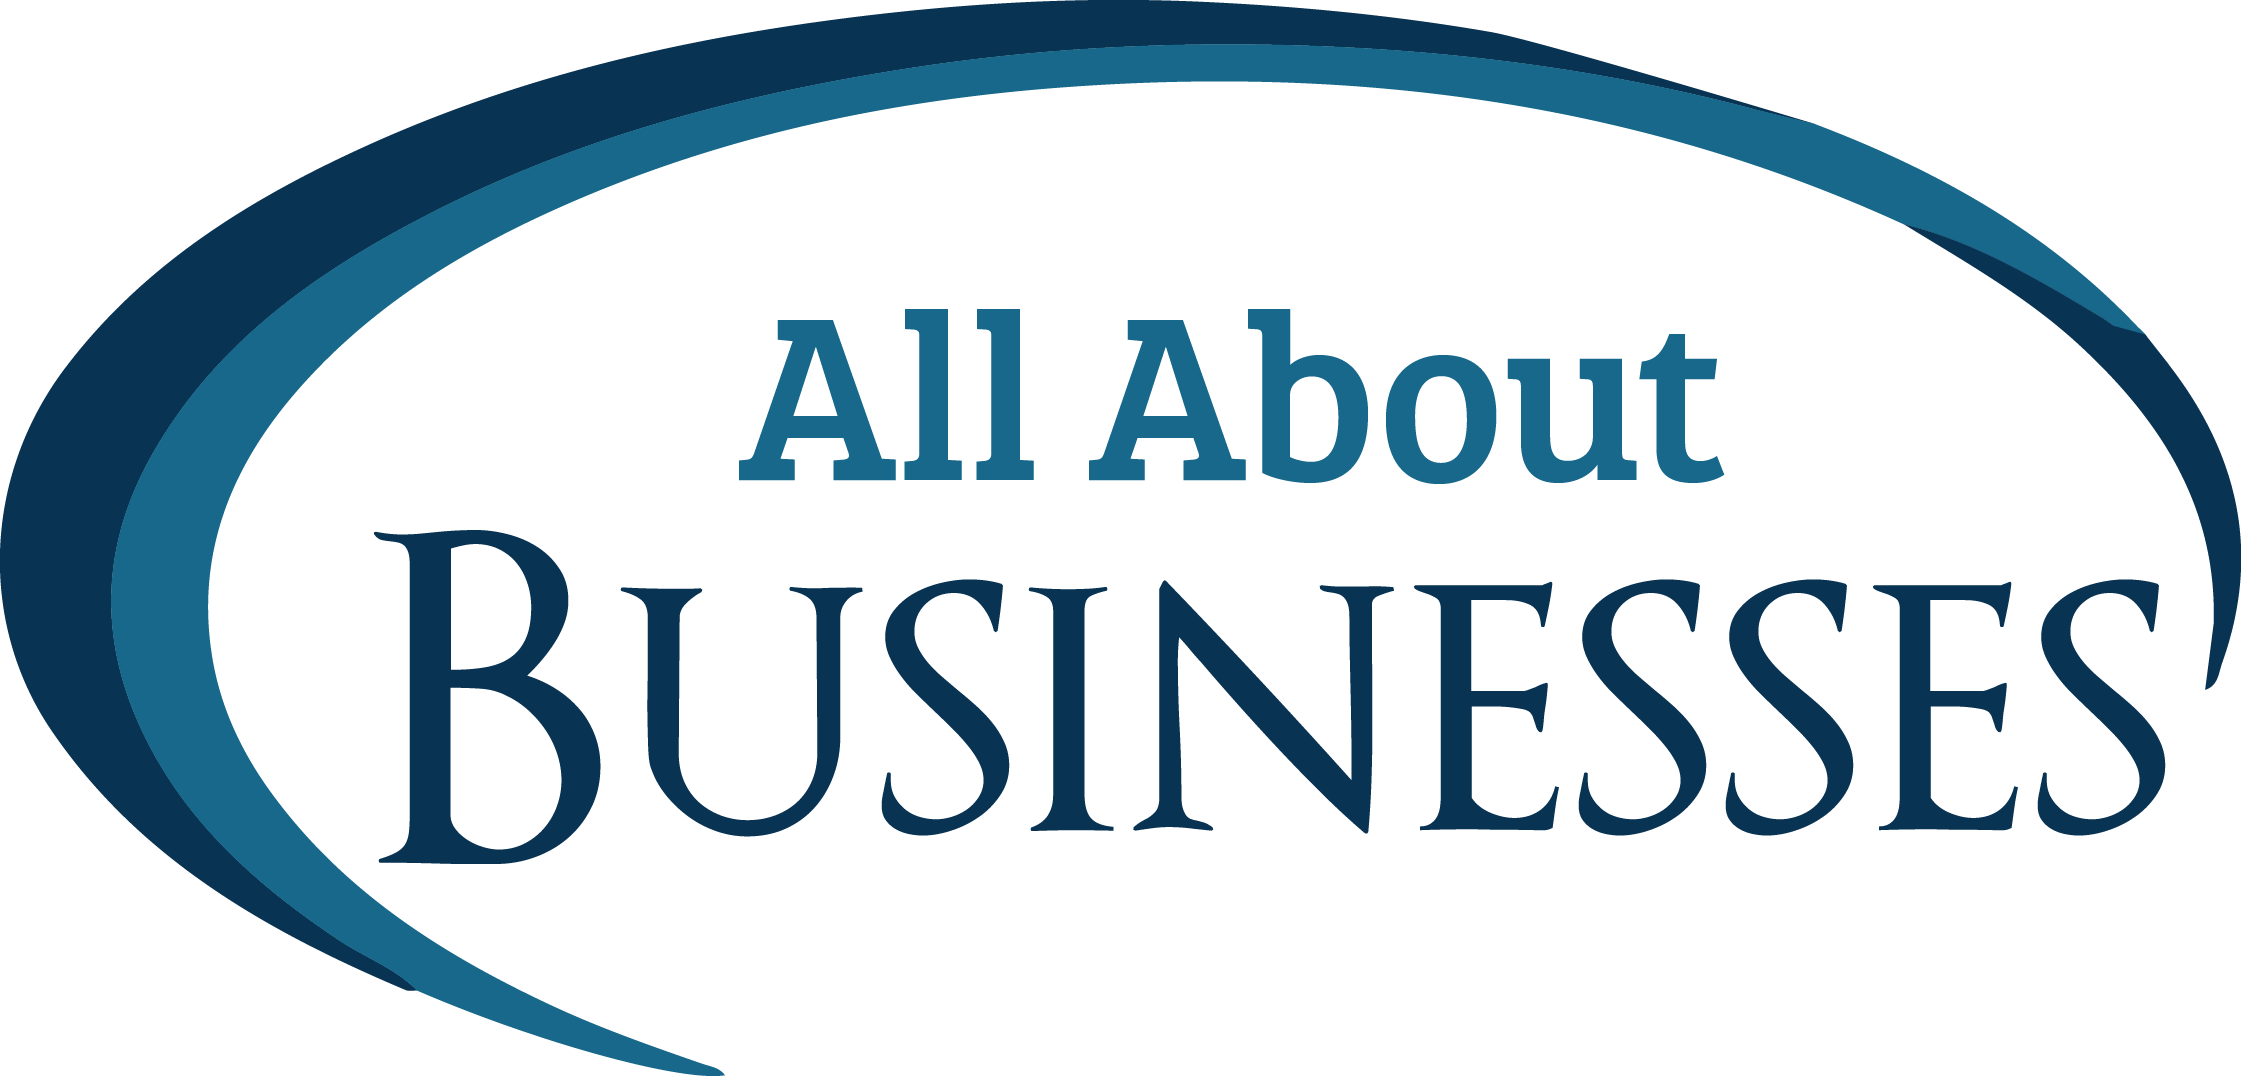 All About Businesses Logo